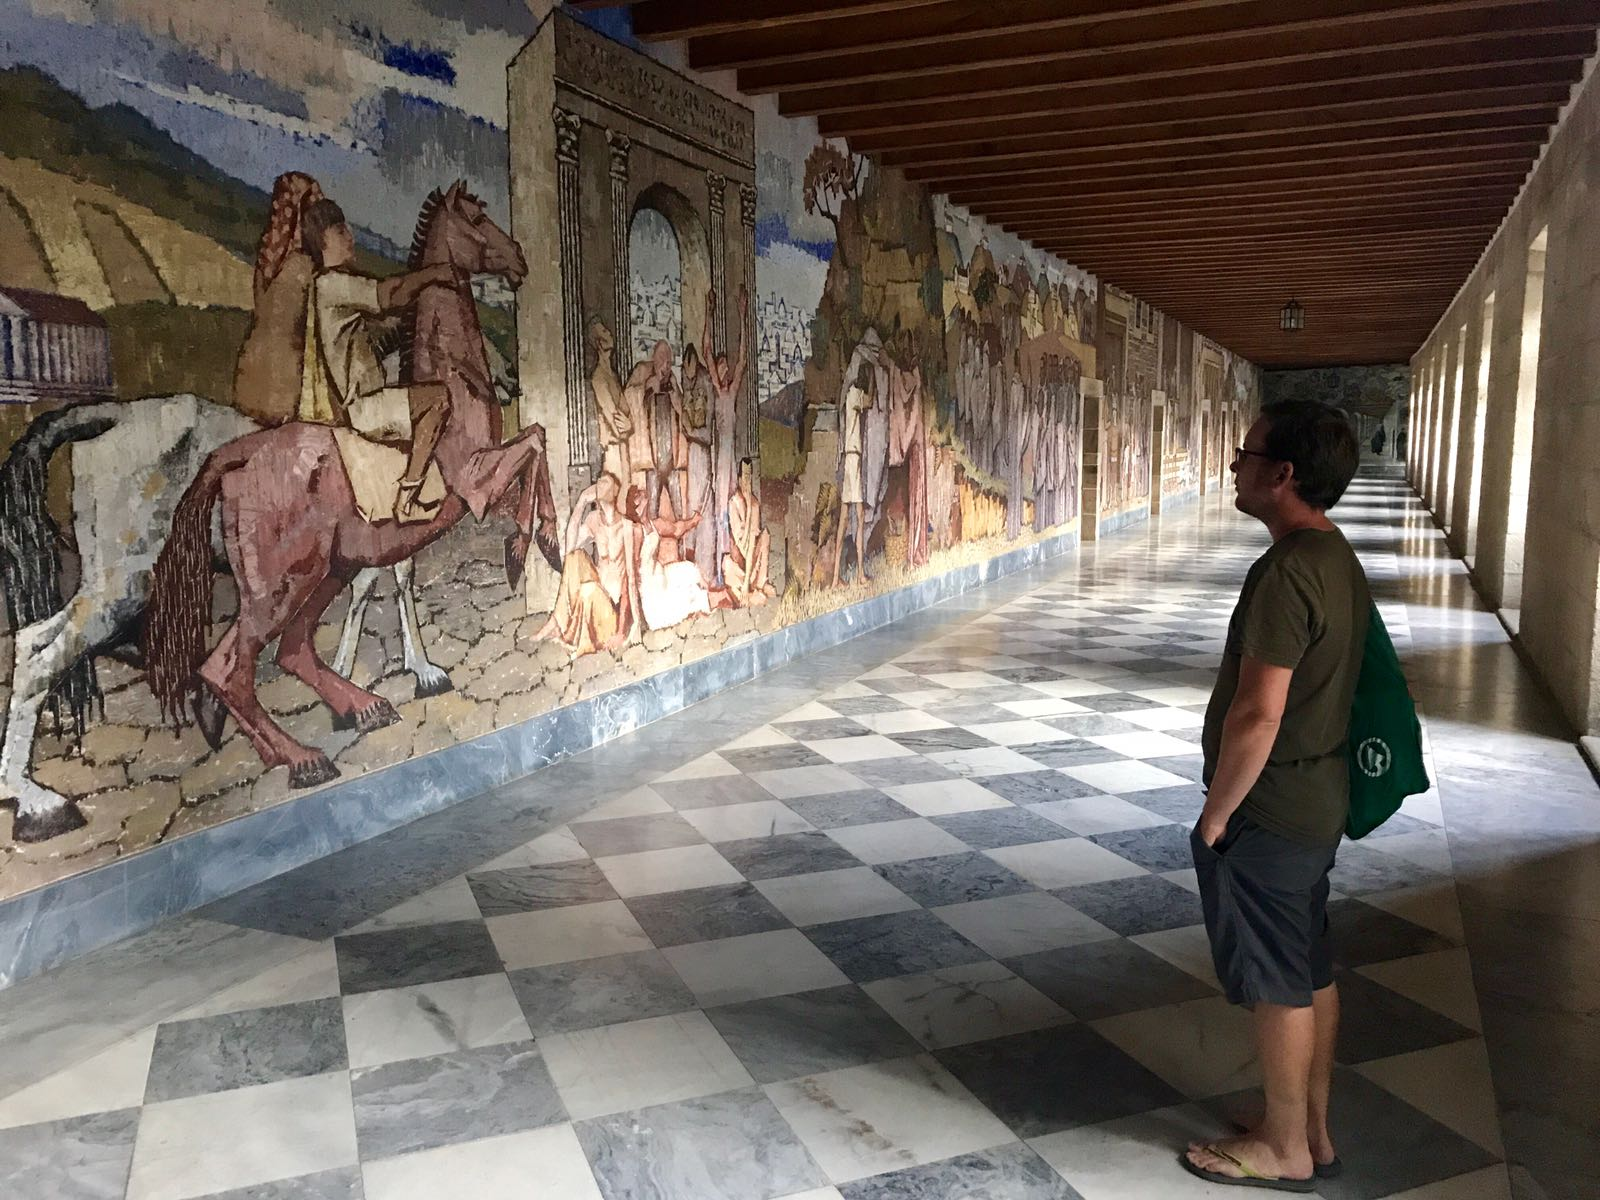 Tom looking at the monastery murals